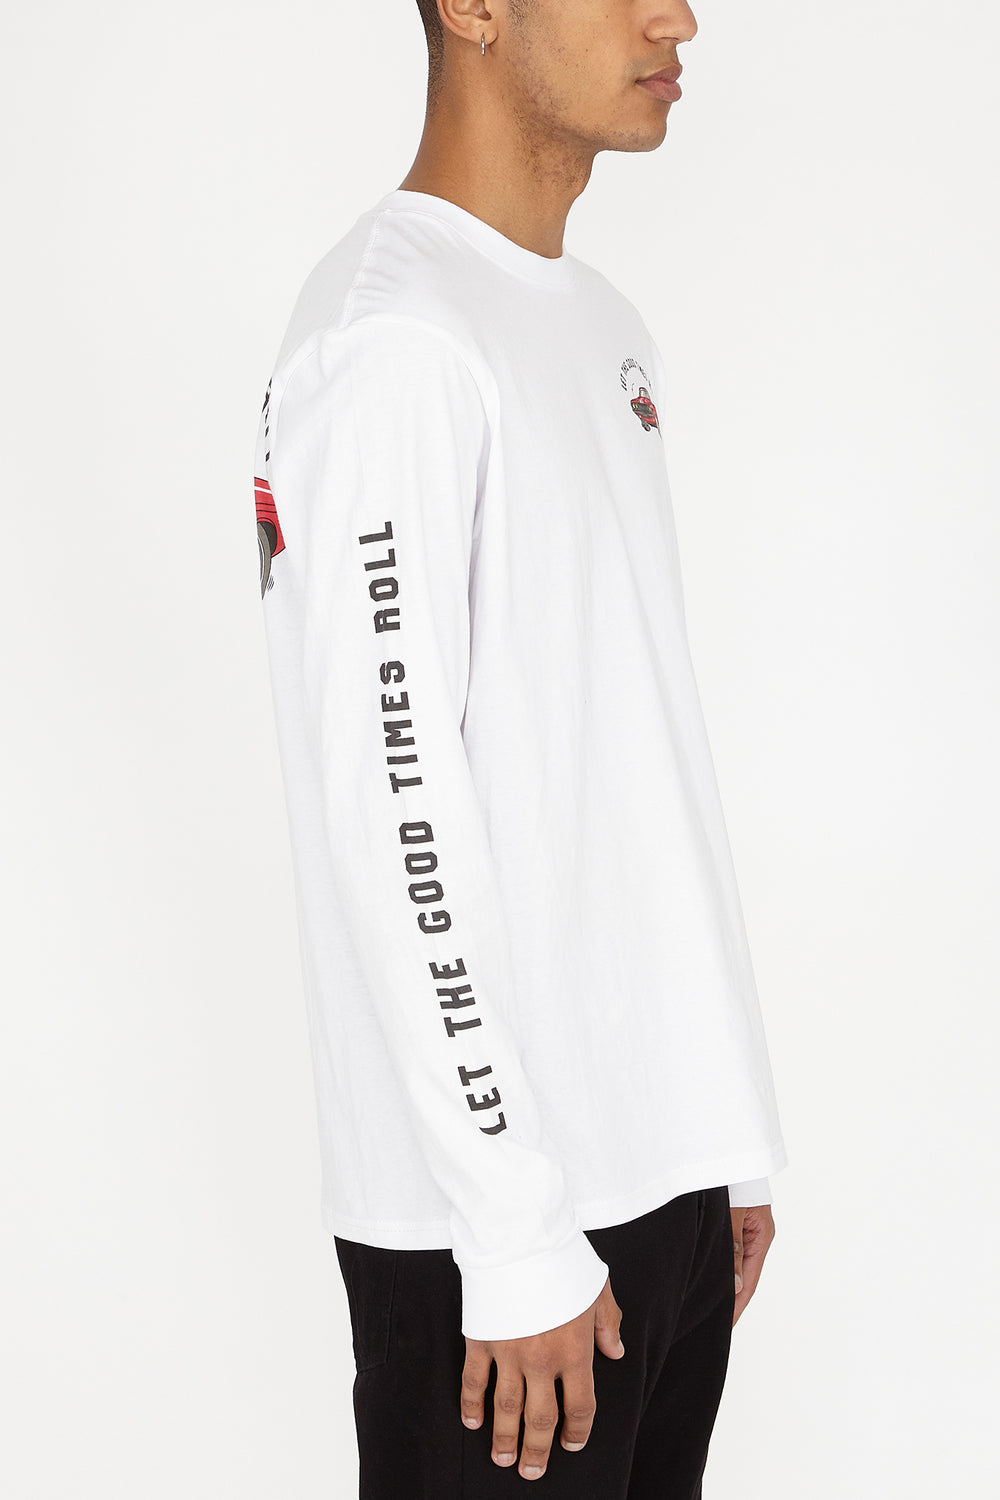 Arsenic Mens Let the Good Times Roll Long Sleeves White